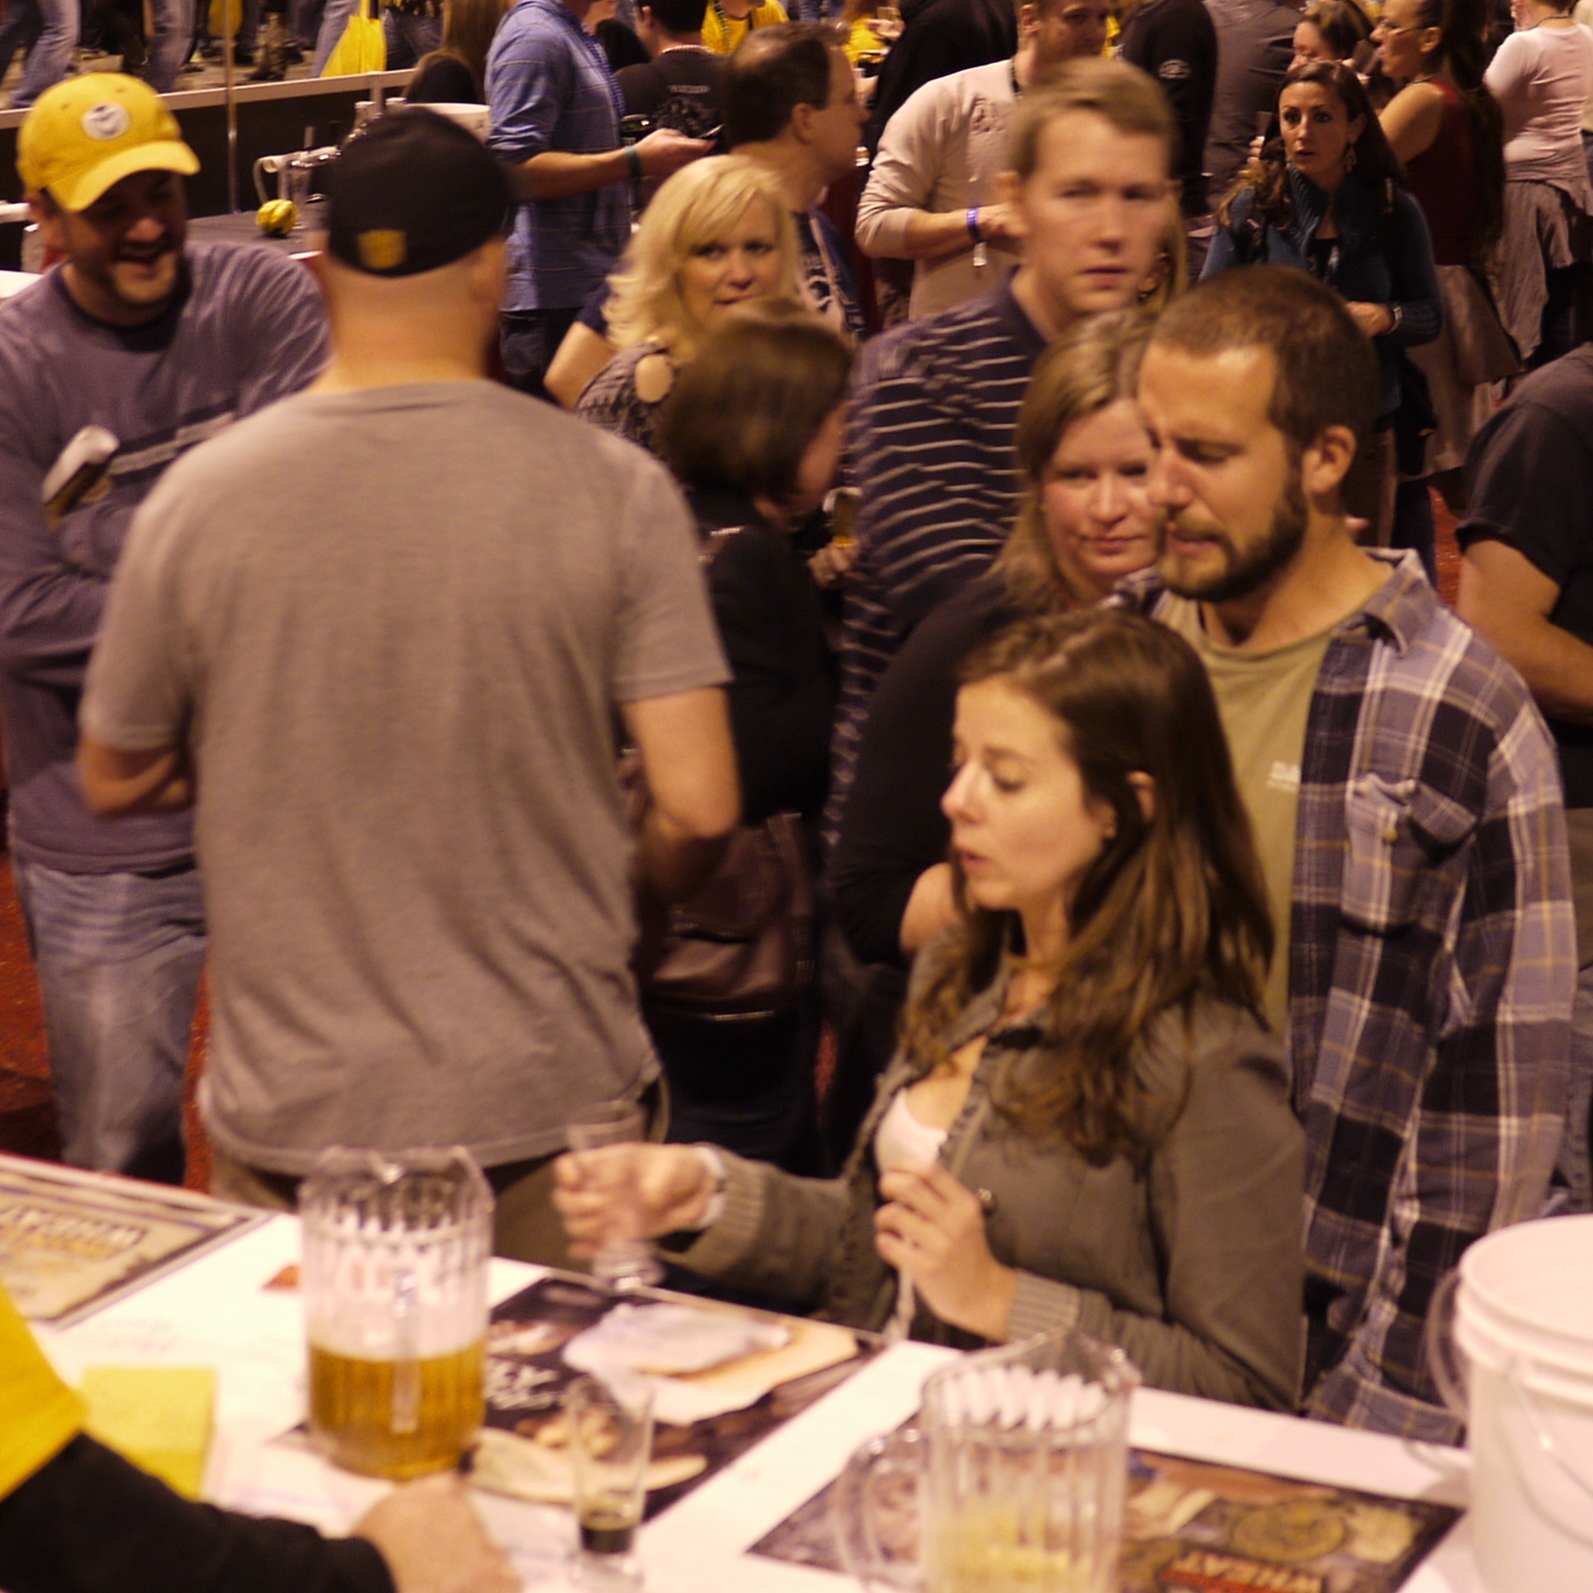 Some 49,000 people came to Denver for the 2012 Great American Beer Festival, which featured a record 2,700 beers in the festival hall.